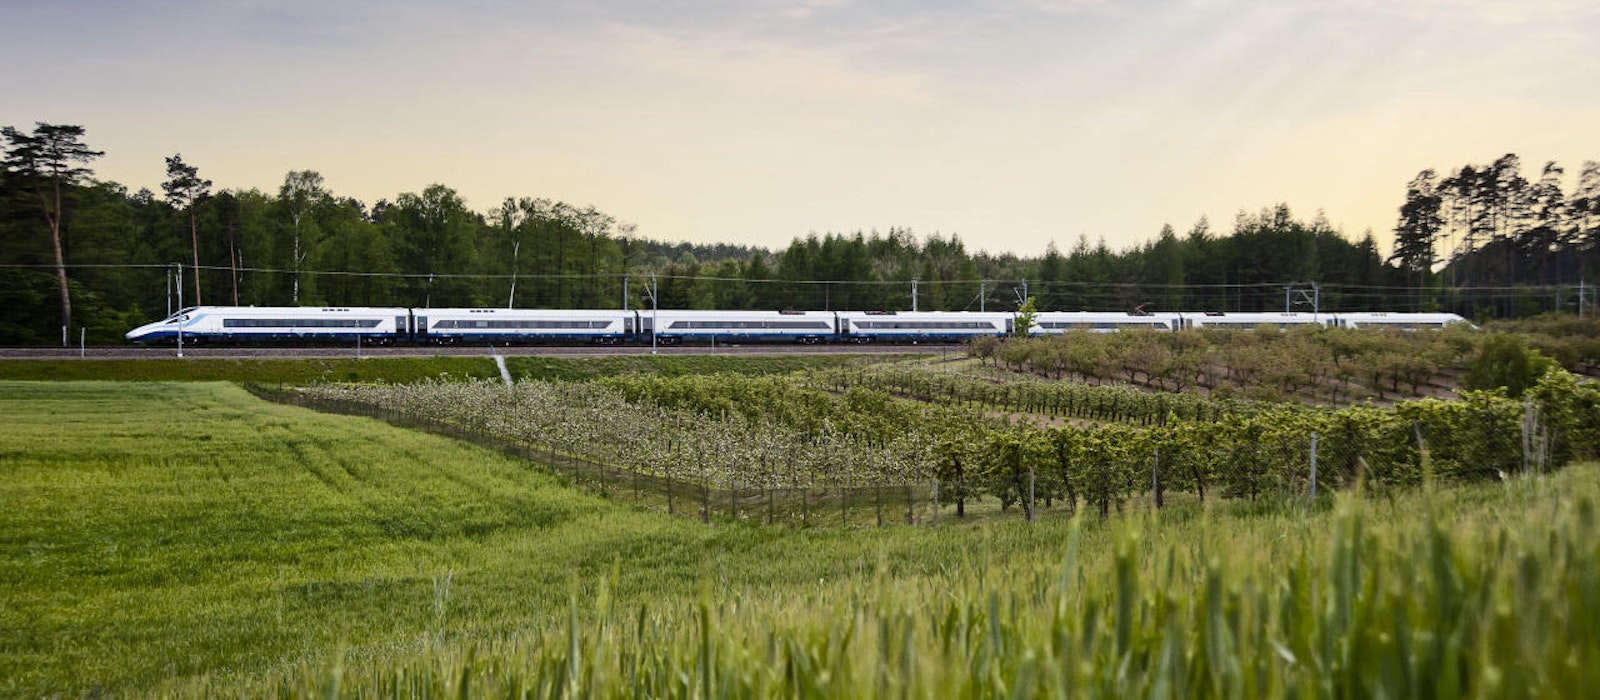 Eurail Passes can be used on high-speed trains, too, like this one in Poland.